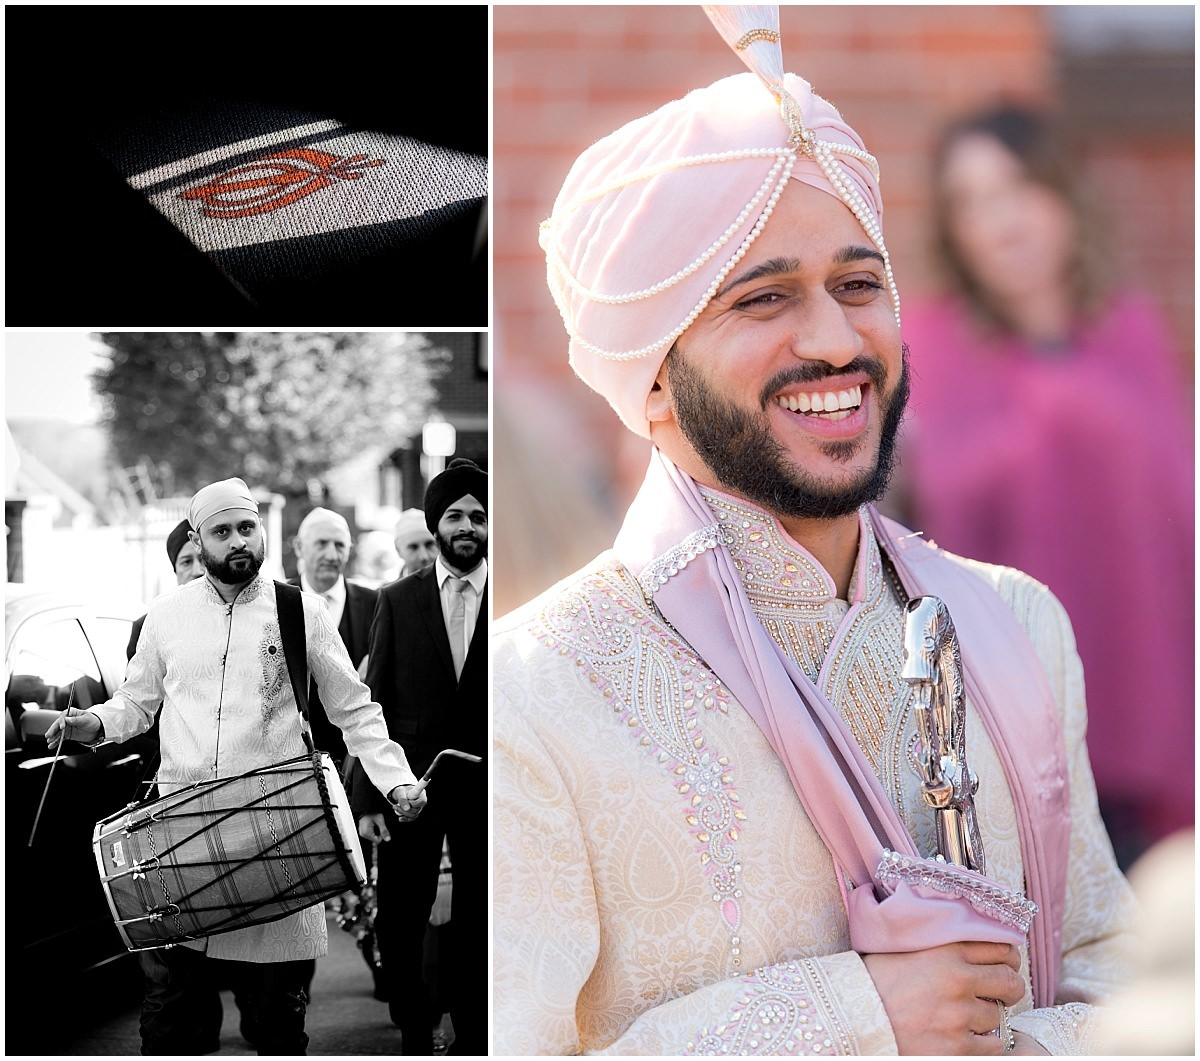 Sikh Wedding groom shot